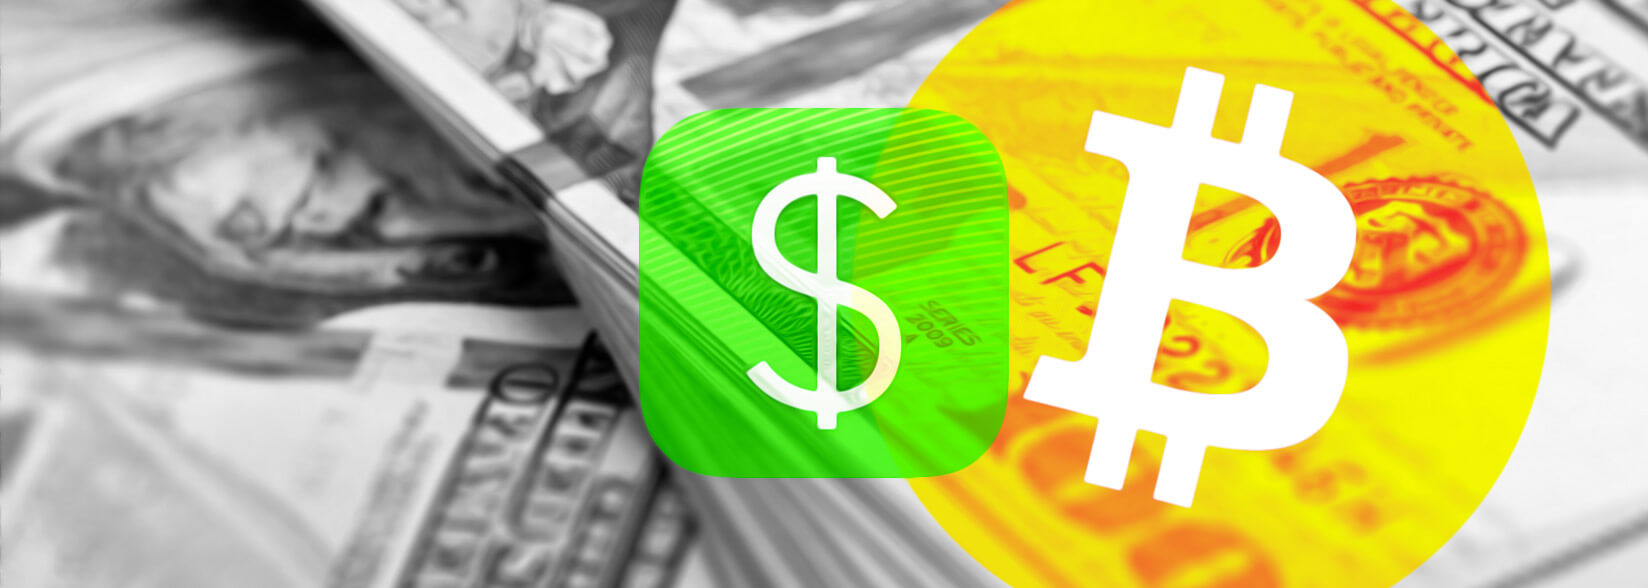 How to buy bitcoin with square cash create your own currency ethereum ccuart Gallery